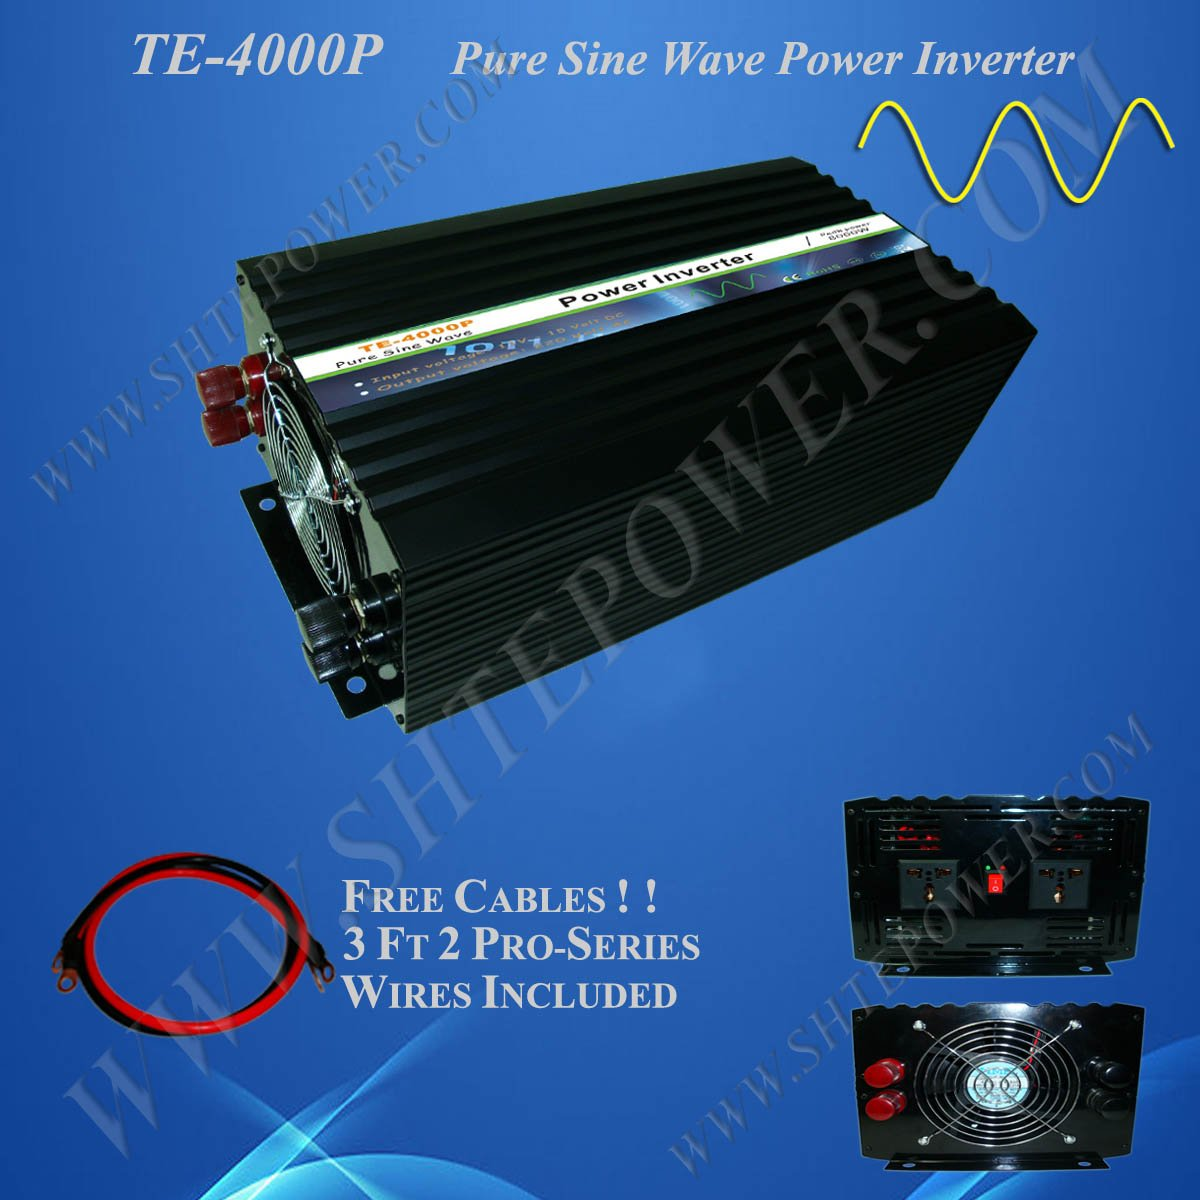 Hot-selling pure sine wave power inverter 4000w 12v to 230v